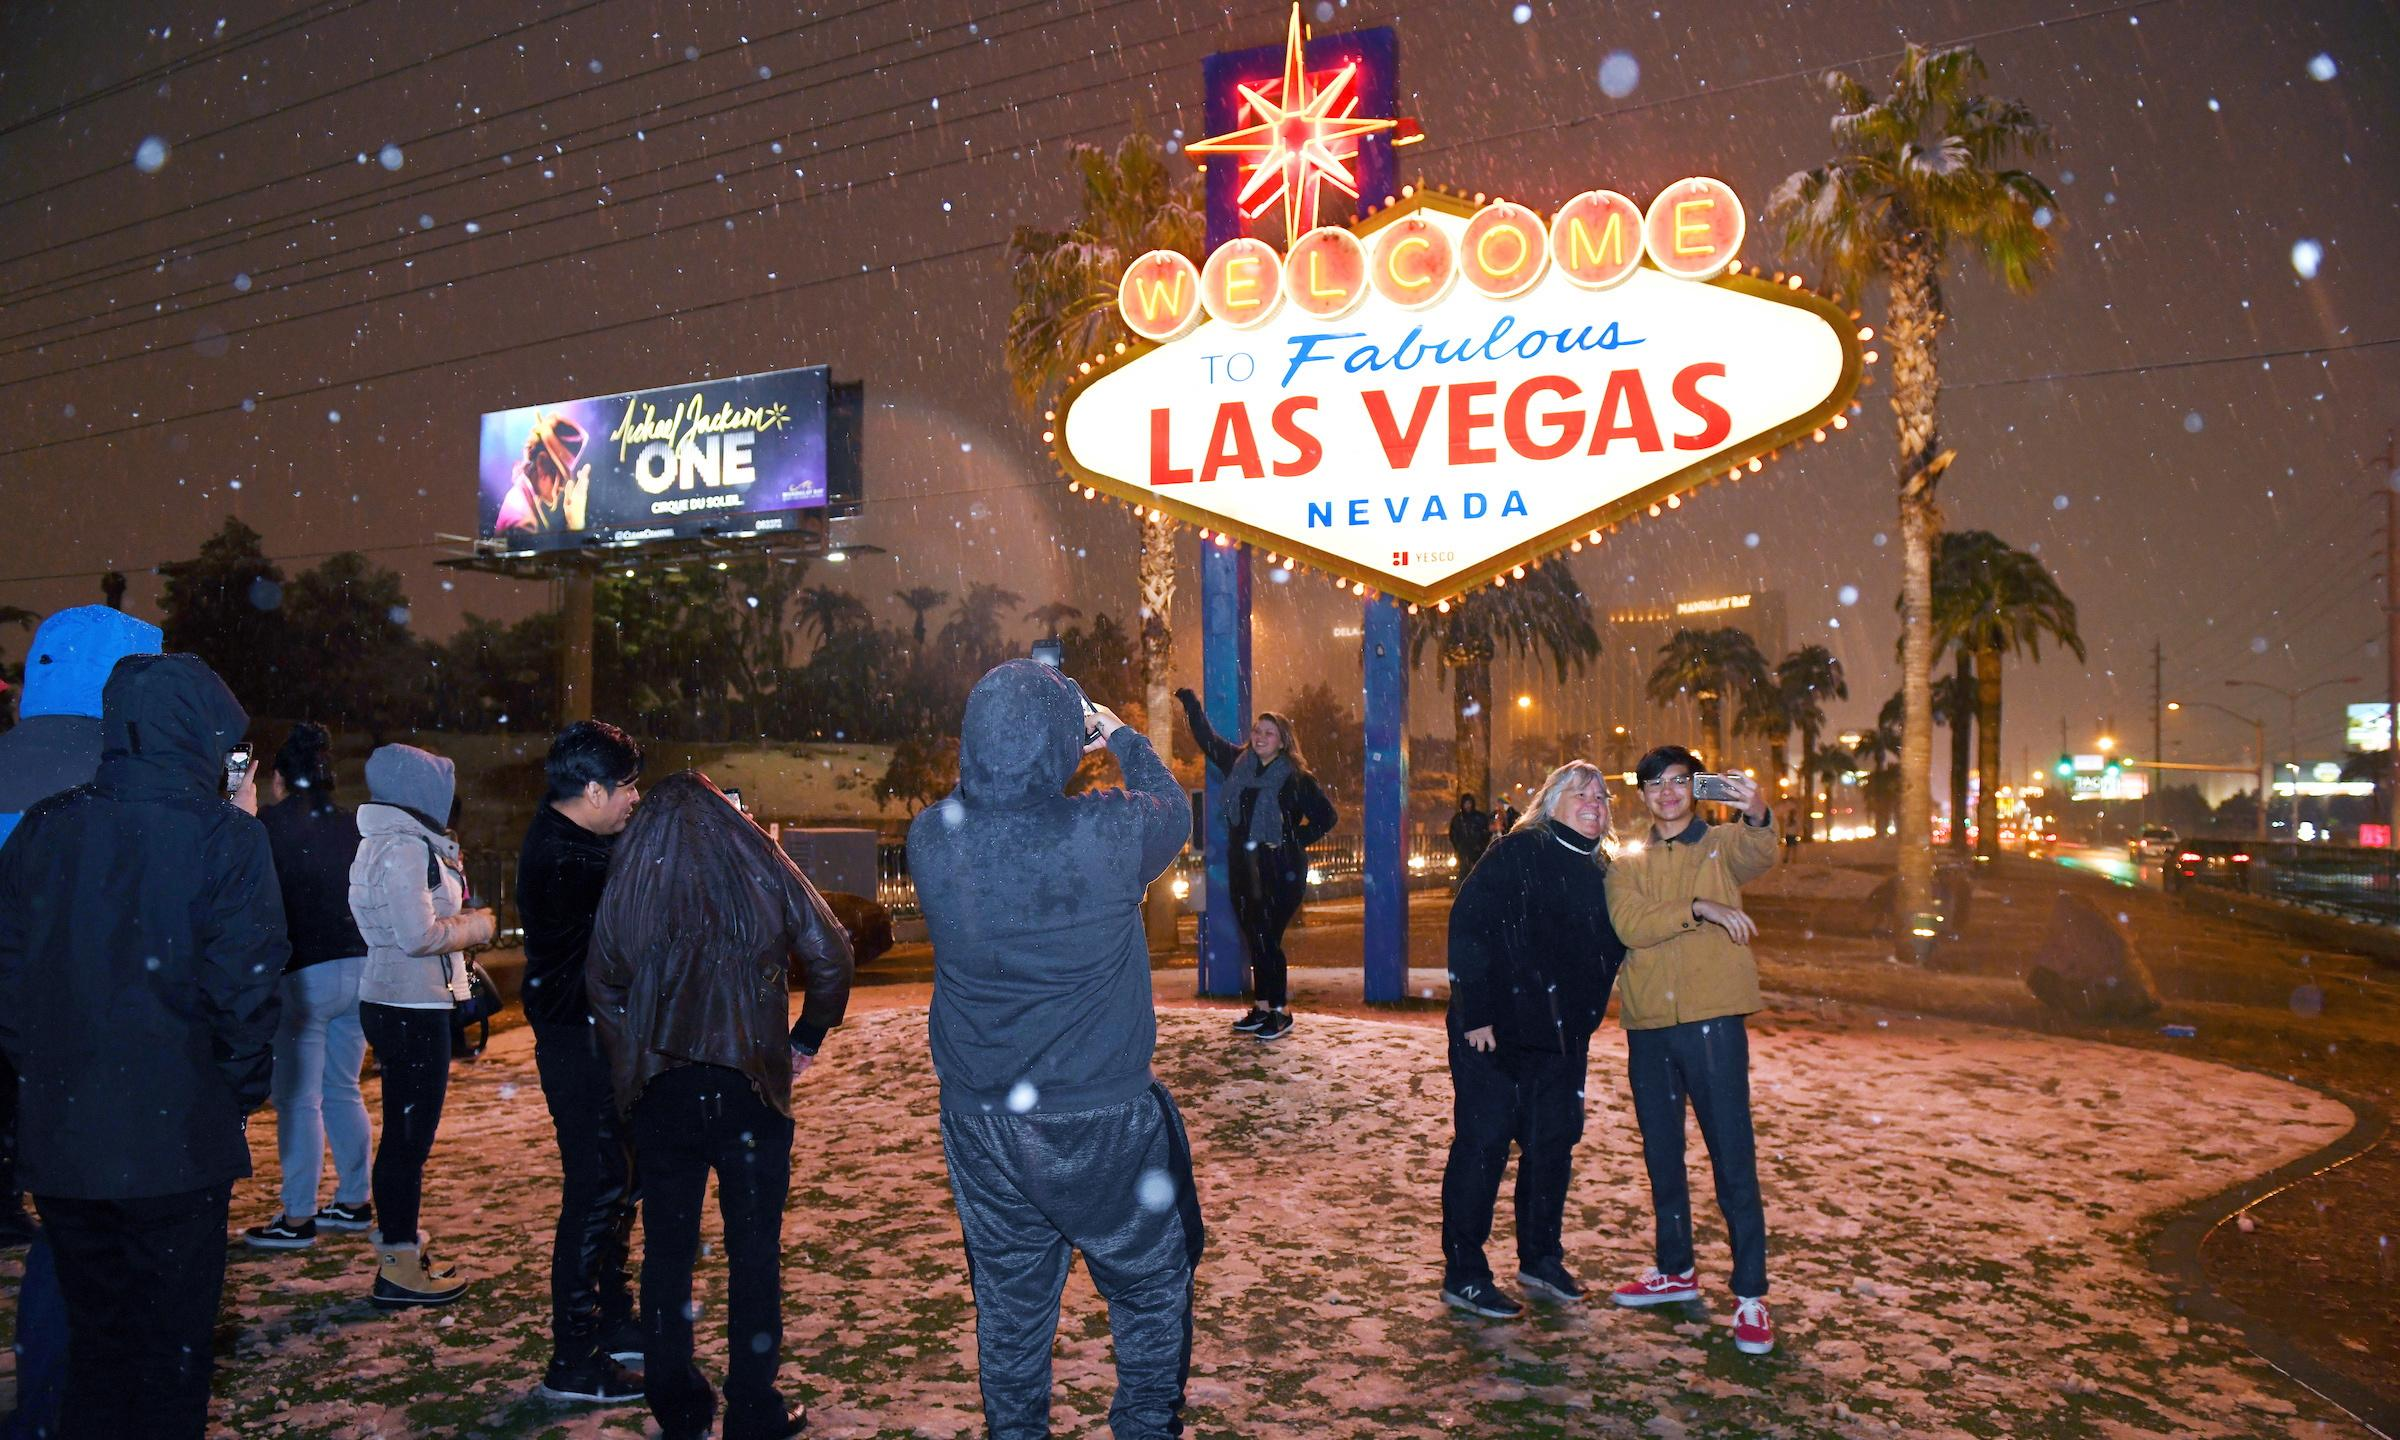 Winter storms bring rare snowfall to Las Vegas and Los Angeles